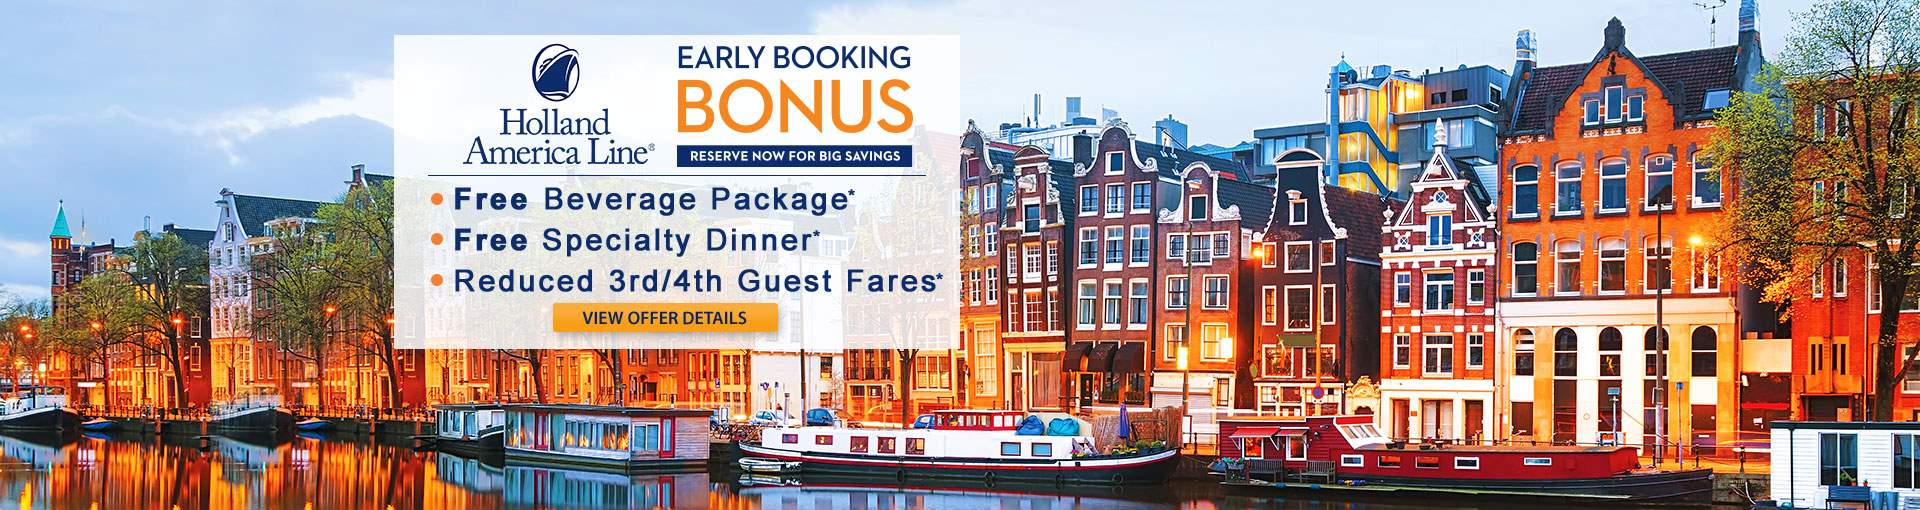 Holland America: Early Booking Bonus